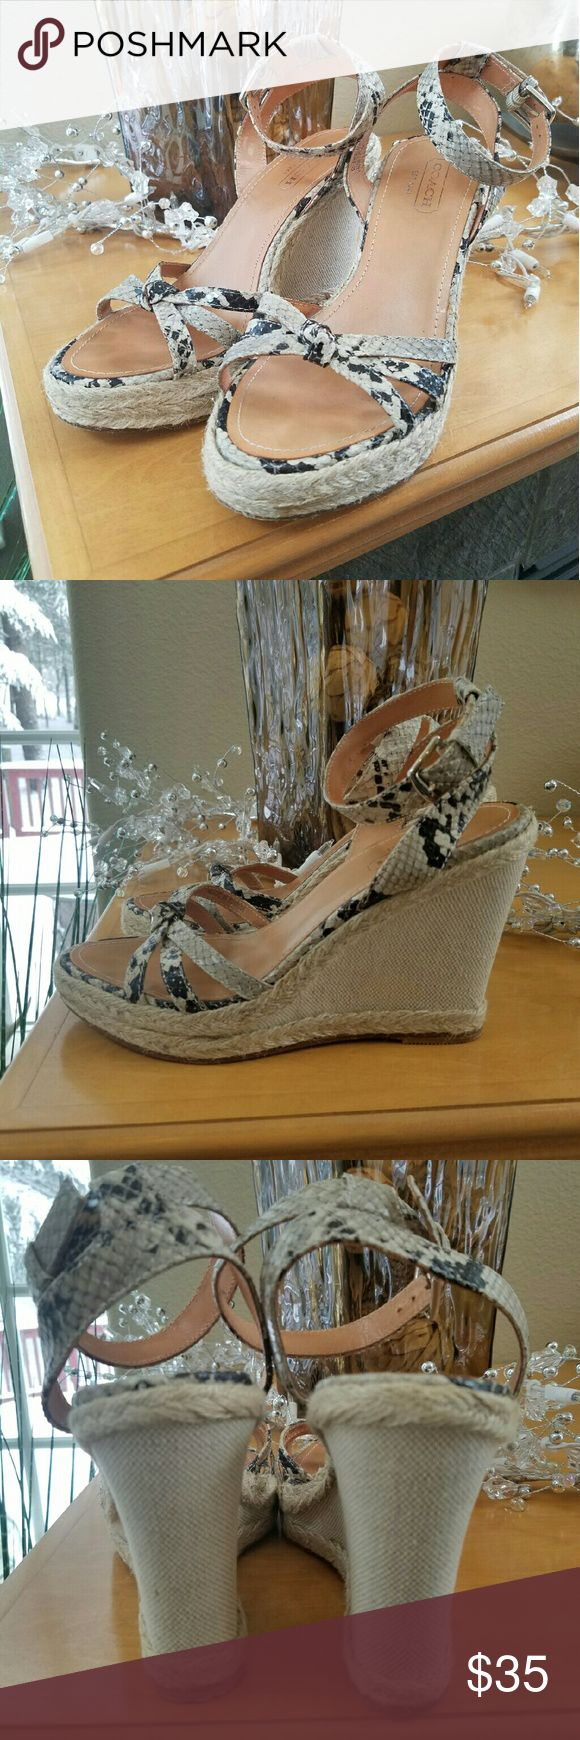 Coach Helen Python Print Wedge Heels size 7 open to offers!  Coach Helen Python Print Wedges Size 7. Leather uppers and wedge in great condition. The wedge is 4 inches and very comfortable! Retailed for $180 Coach Shoes Wedges